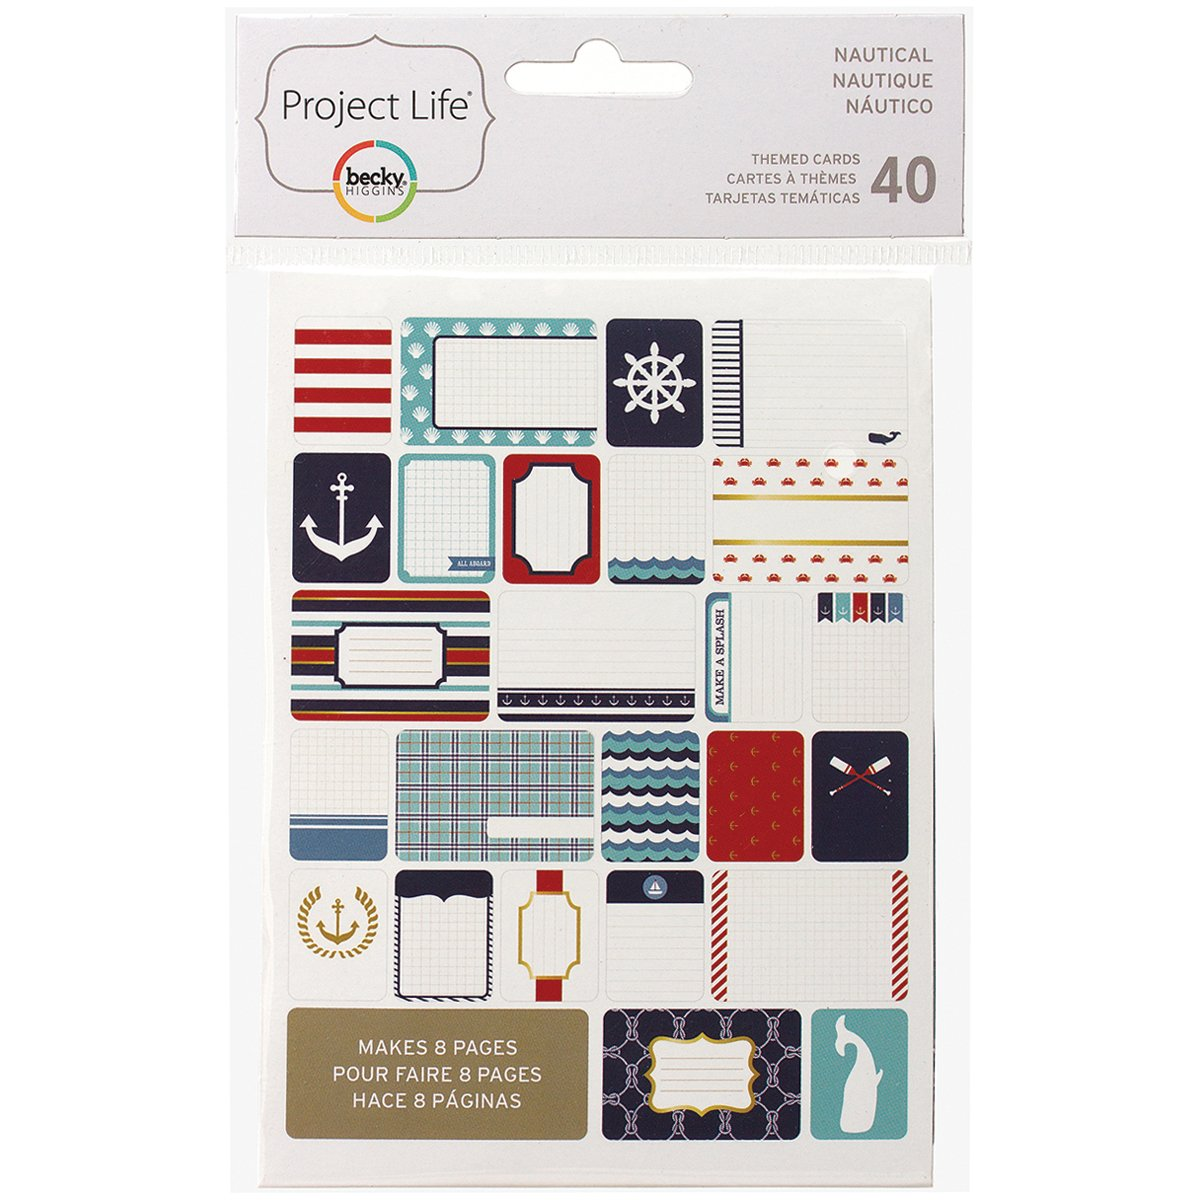 Project Life 718813977159 Themed Card Nautical